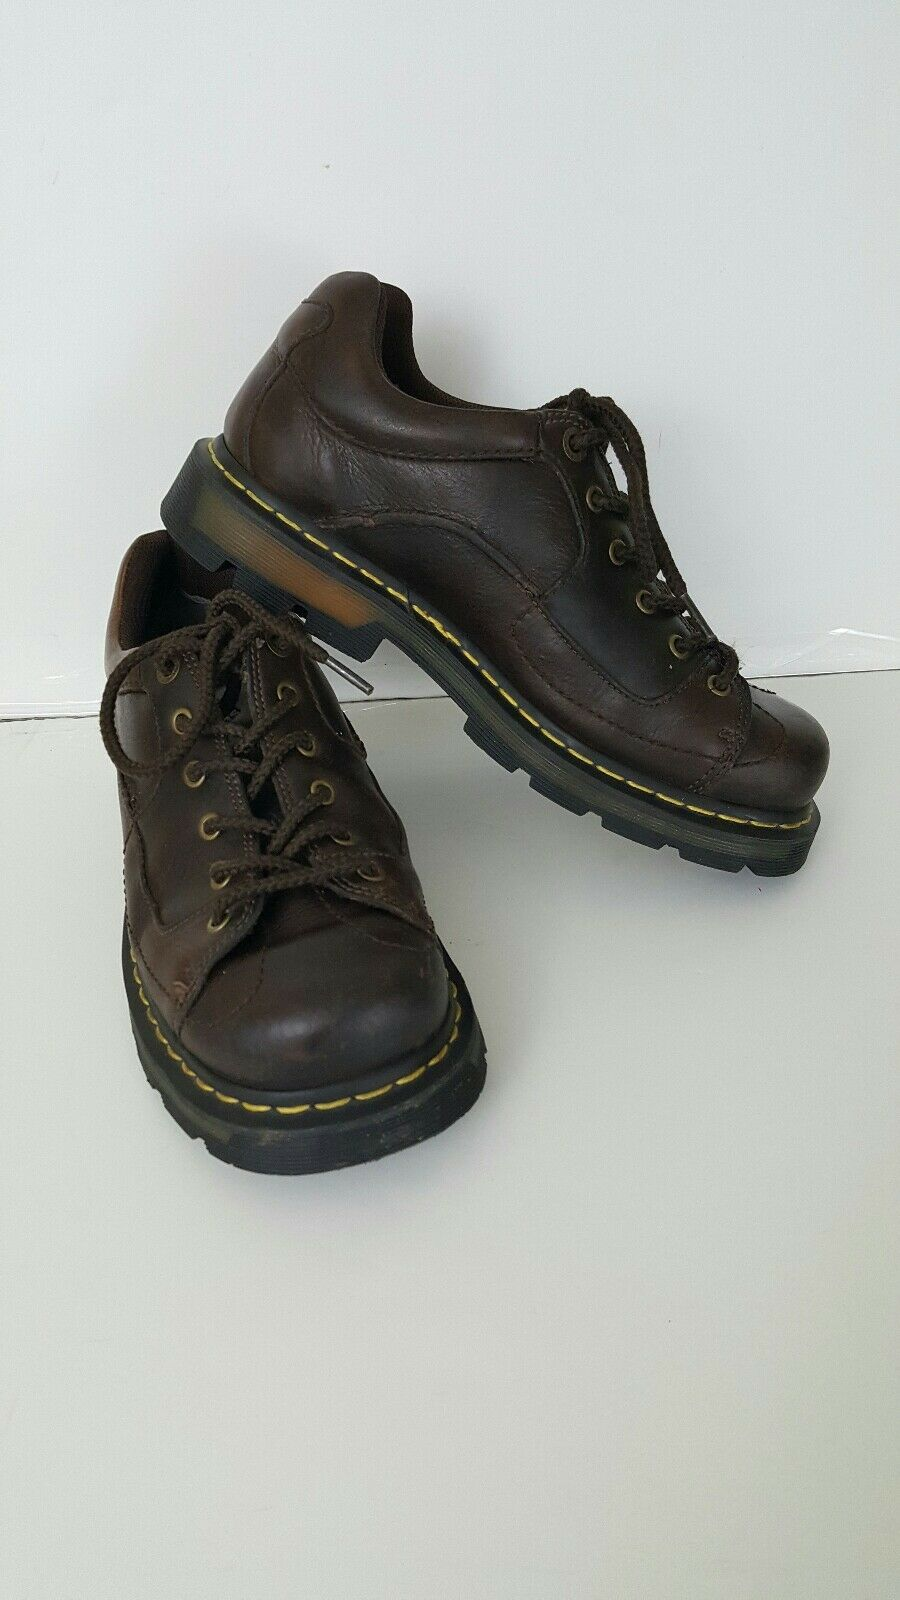 Dr. Martens Boots Docs Brown Leather Work Casual Size 9 Lace Up 9A90 Ships Free